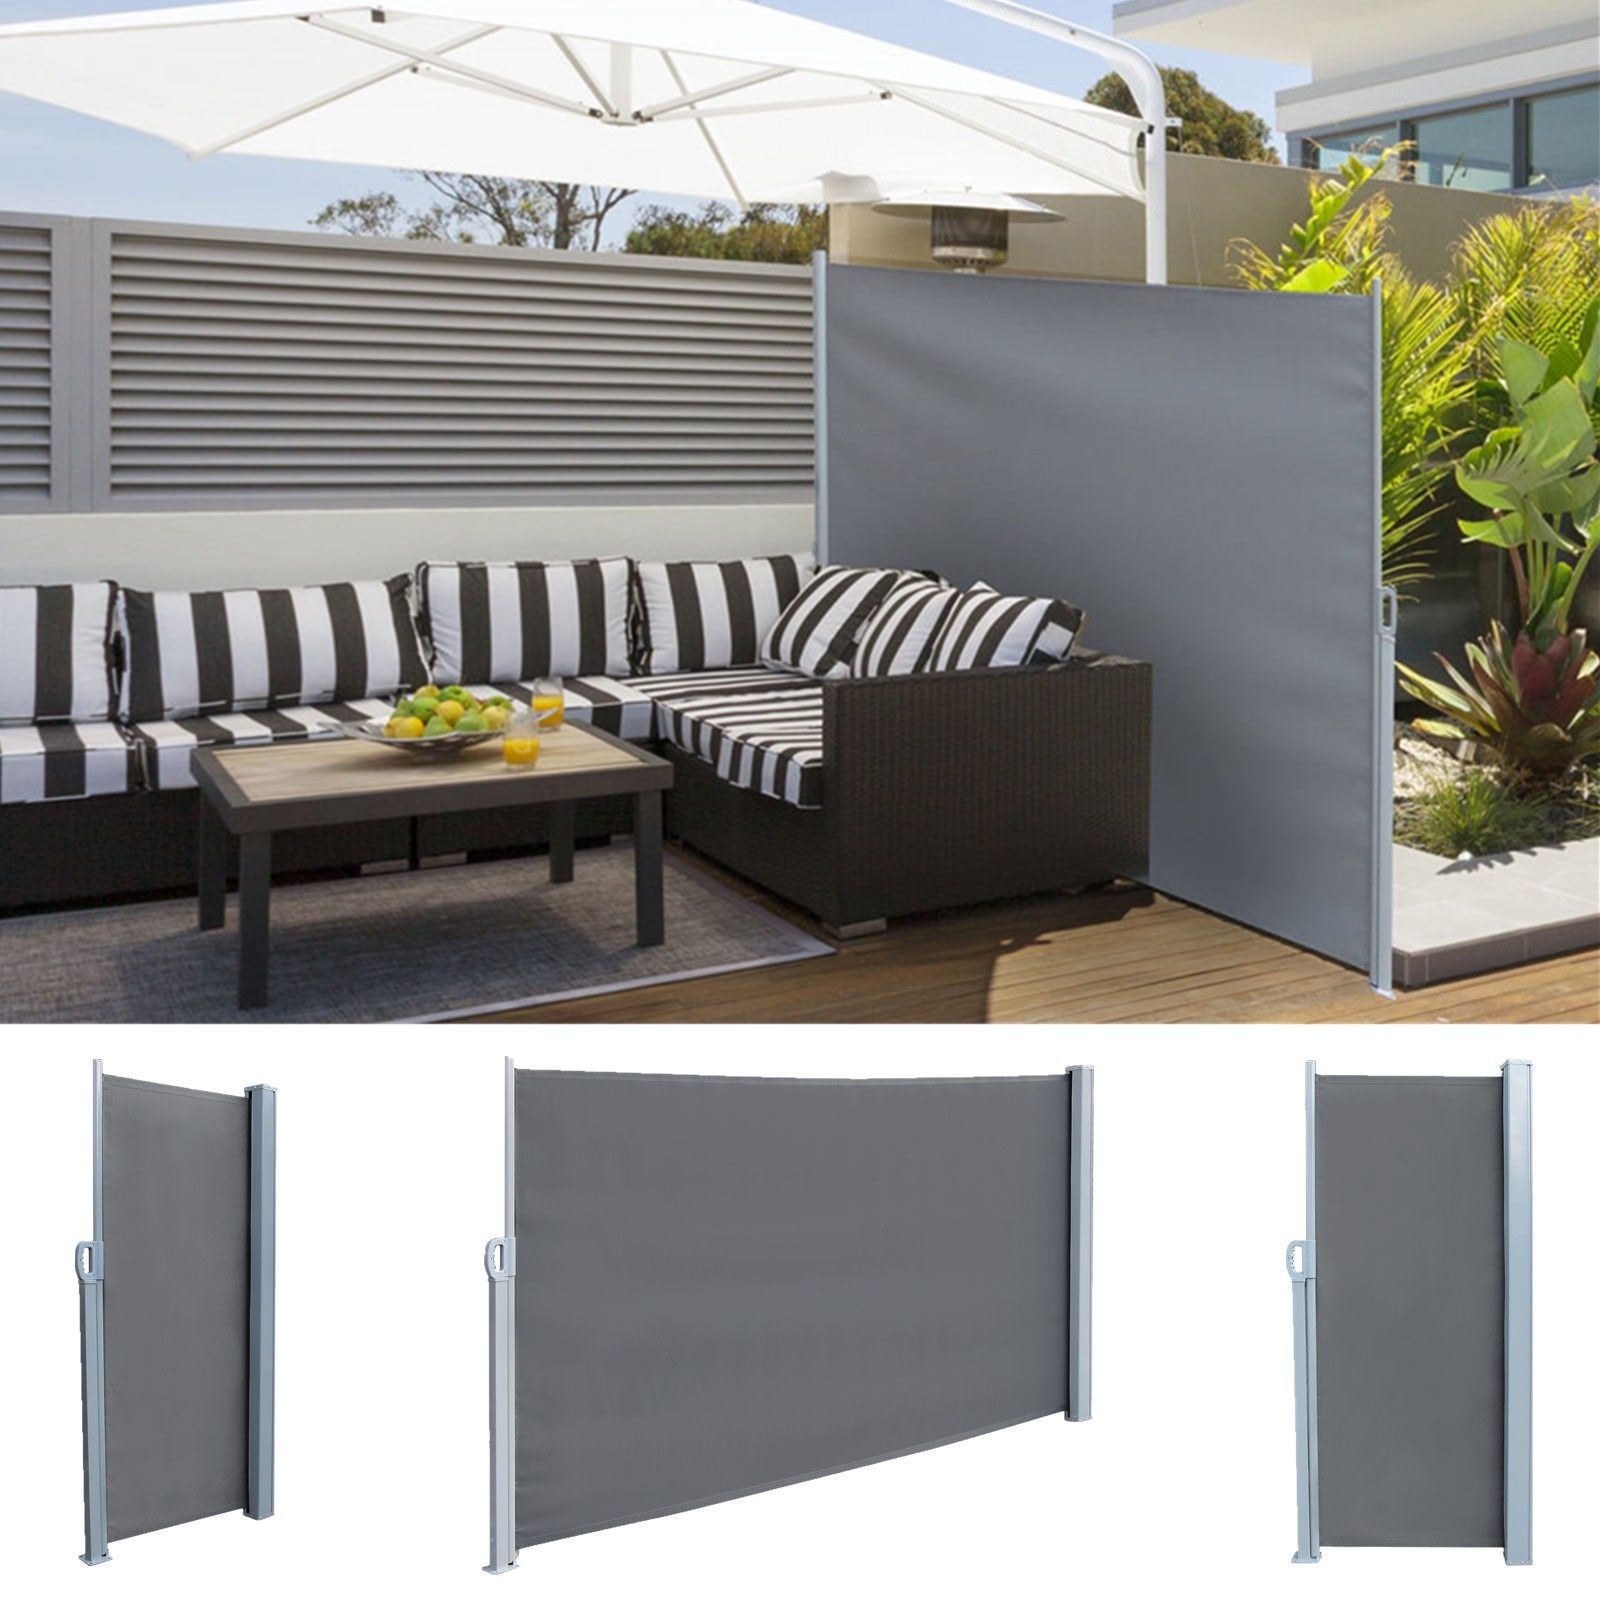 sale retailer e270c 18c3a Real 5.9' x 9.8' Retractable Side Awning Outdoor Patio Privacy Sunshade  Divider Screen